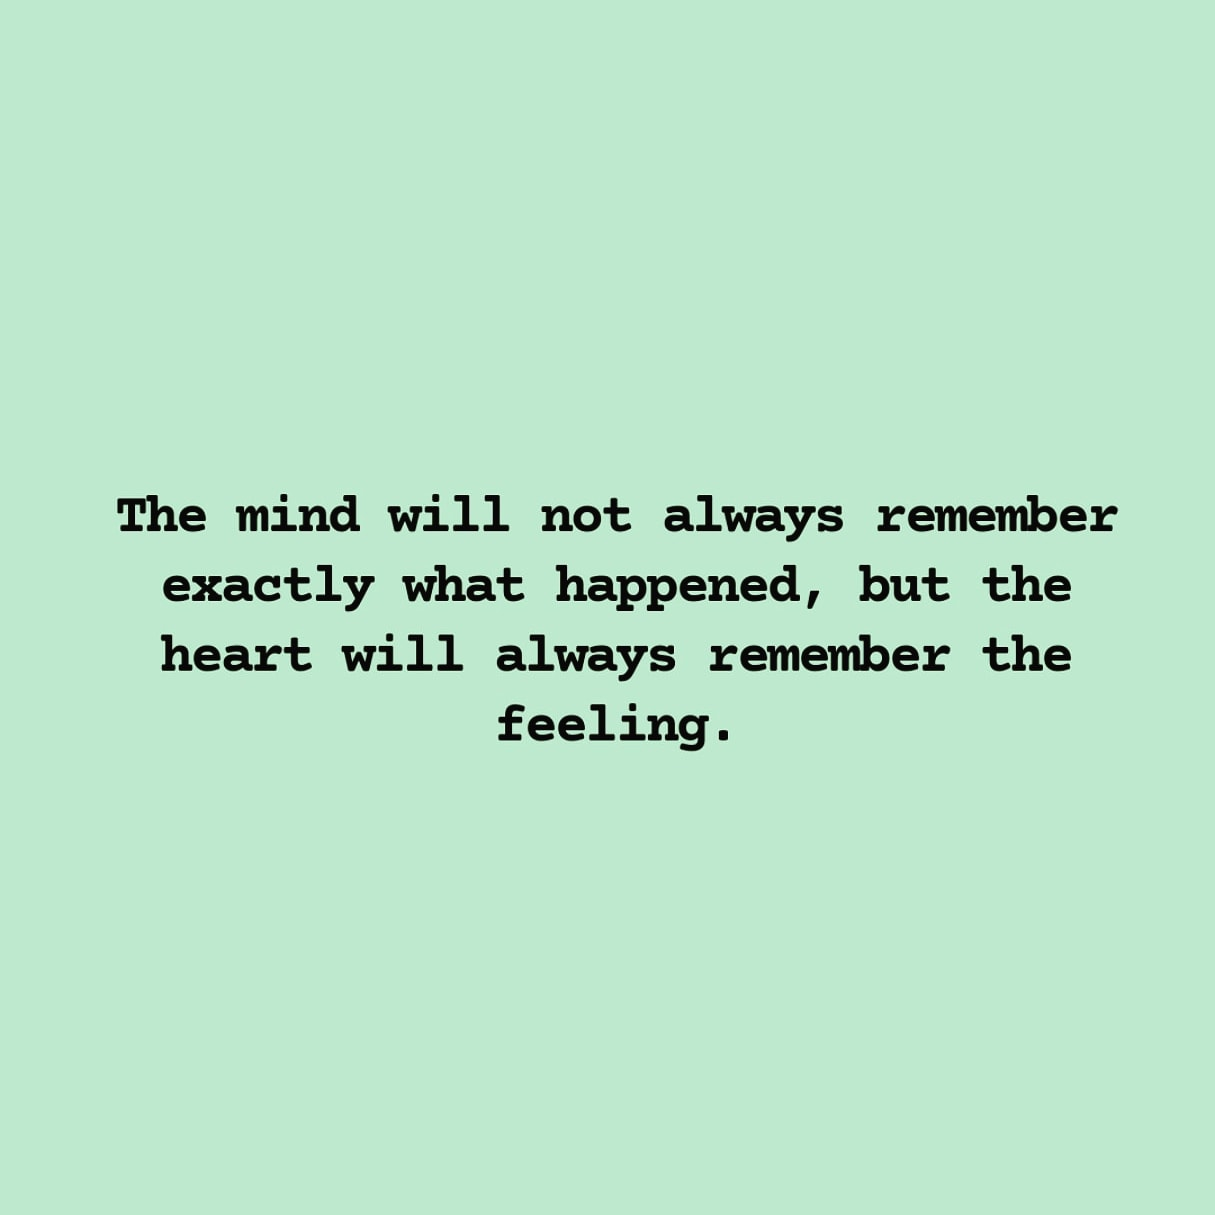 The mind will not always remember exactly what happened, but the heart will always remember the feeling.(1080X1080)